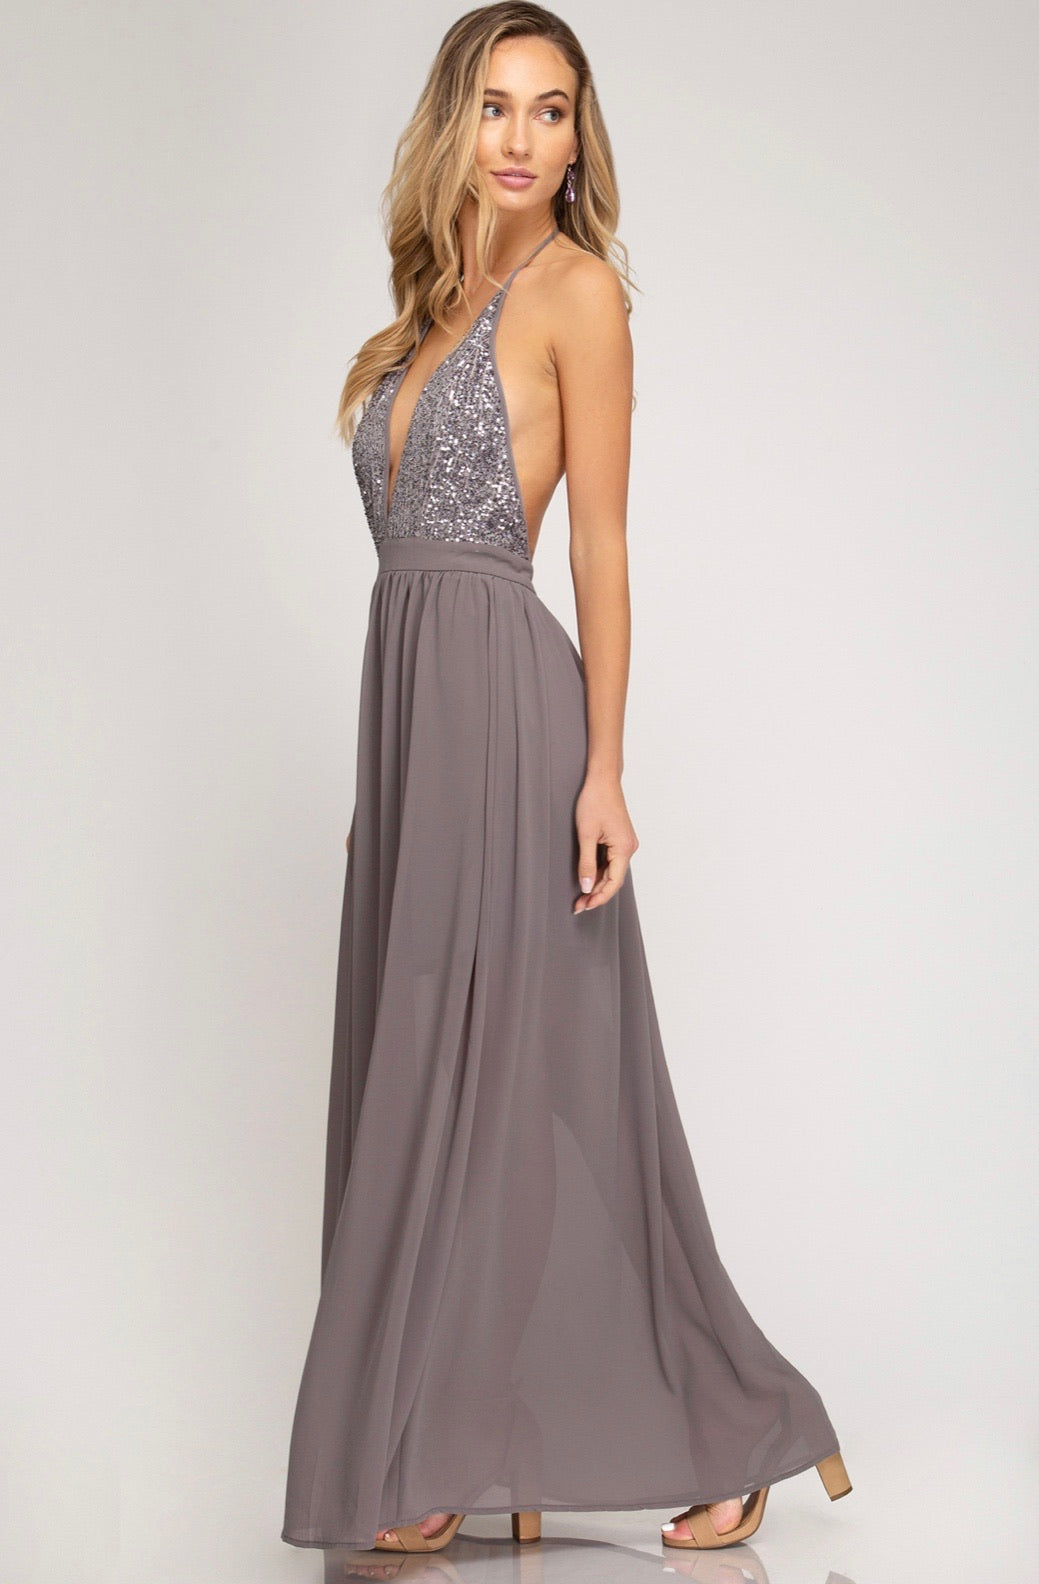 WOVEN MAXI DRESS WITH SEQUIN CAMI TOP WITH LINING